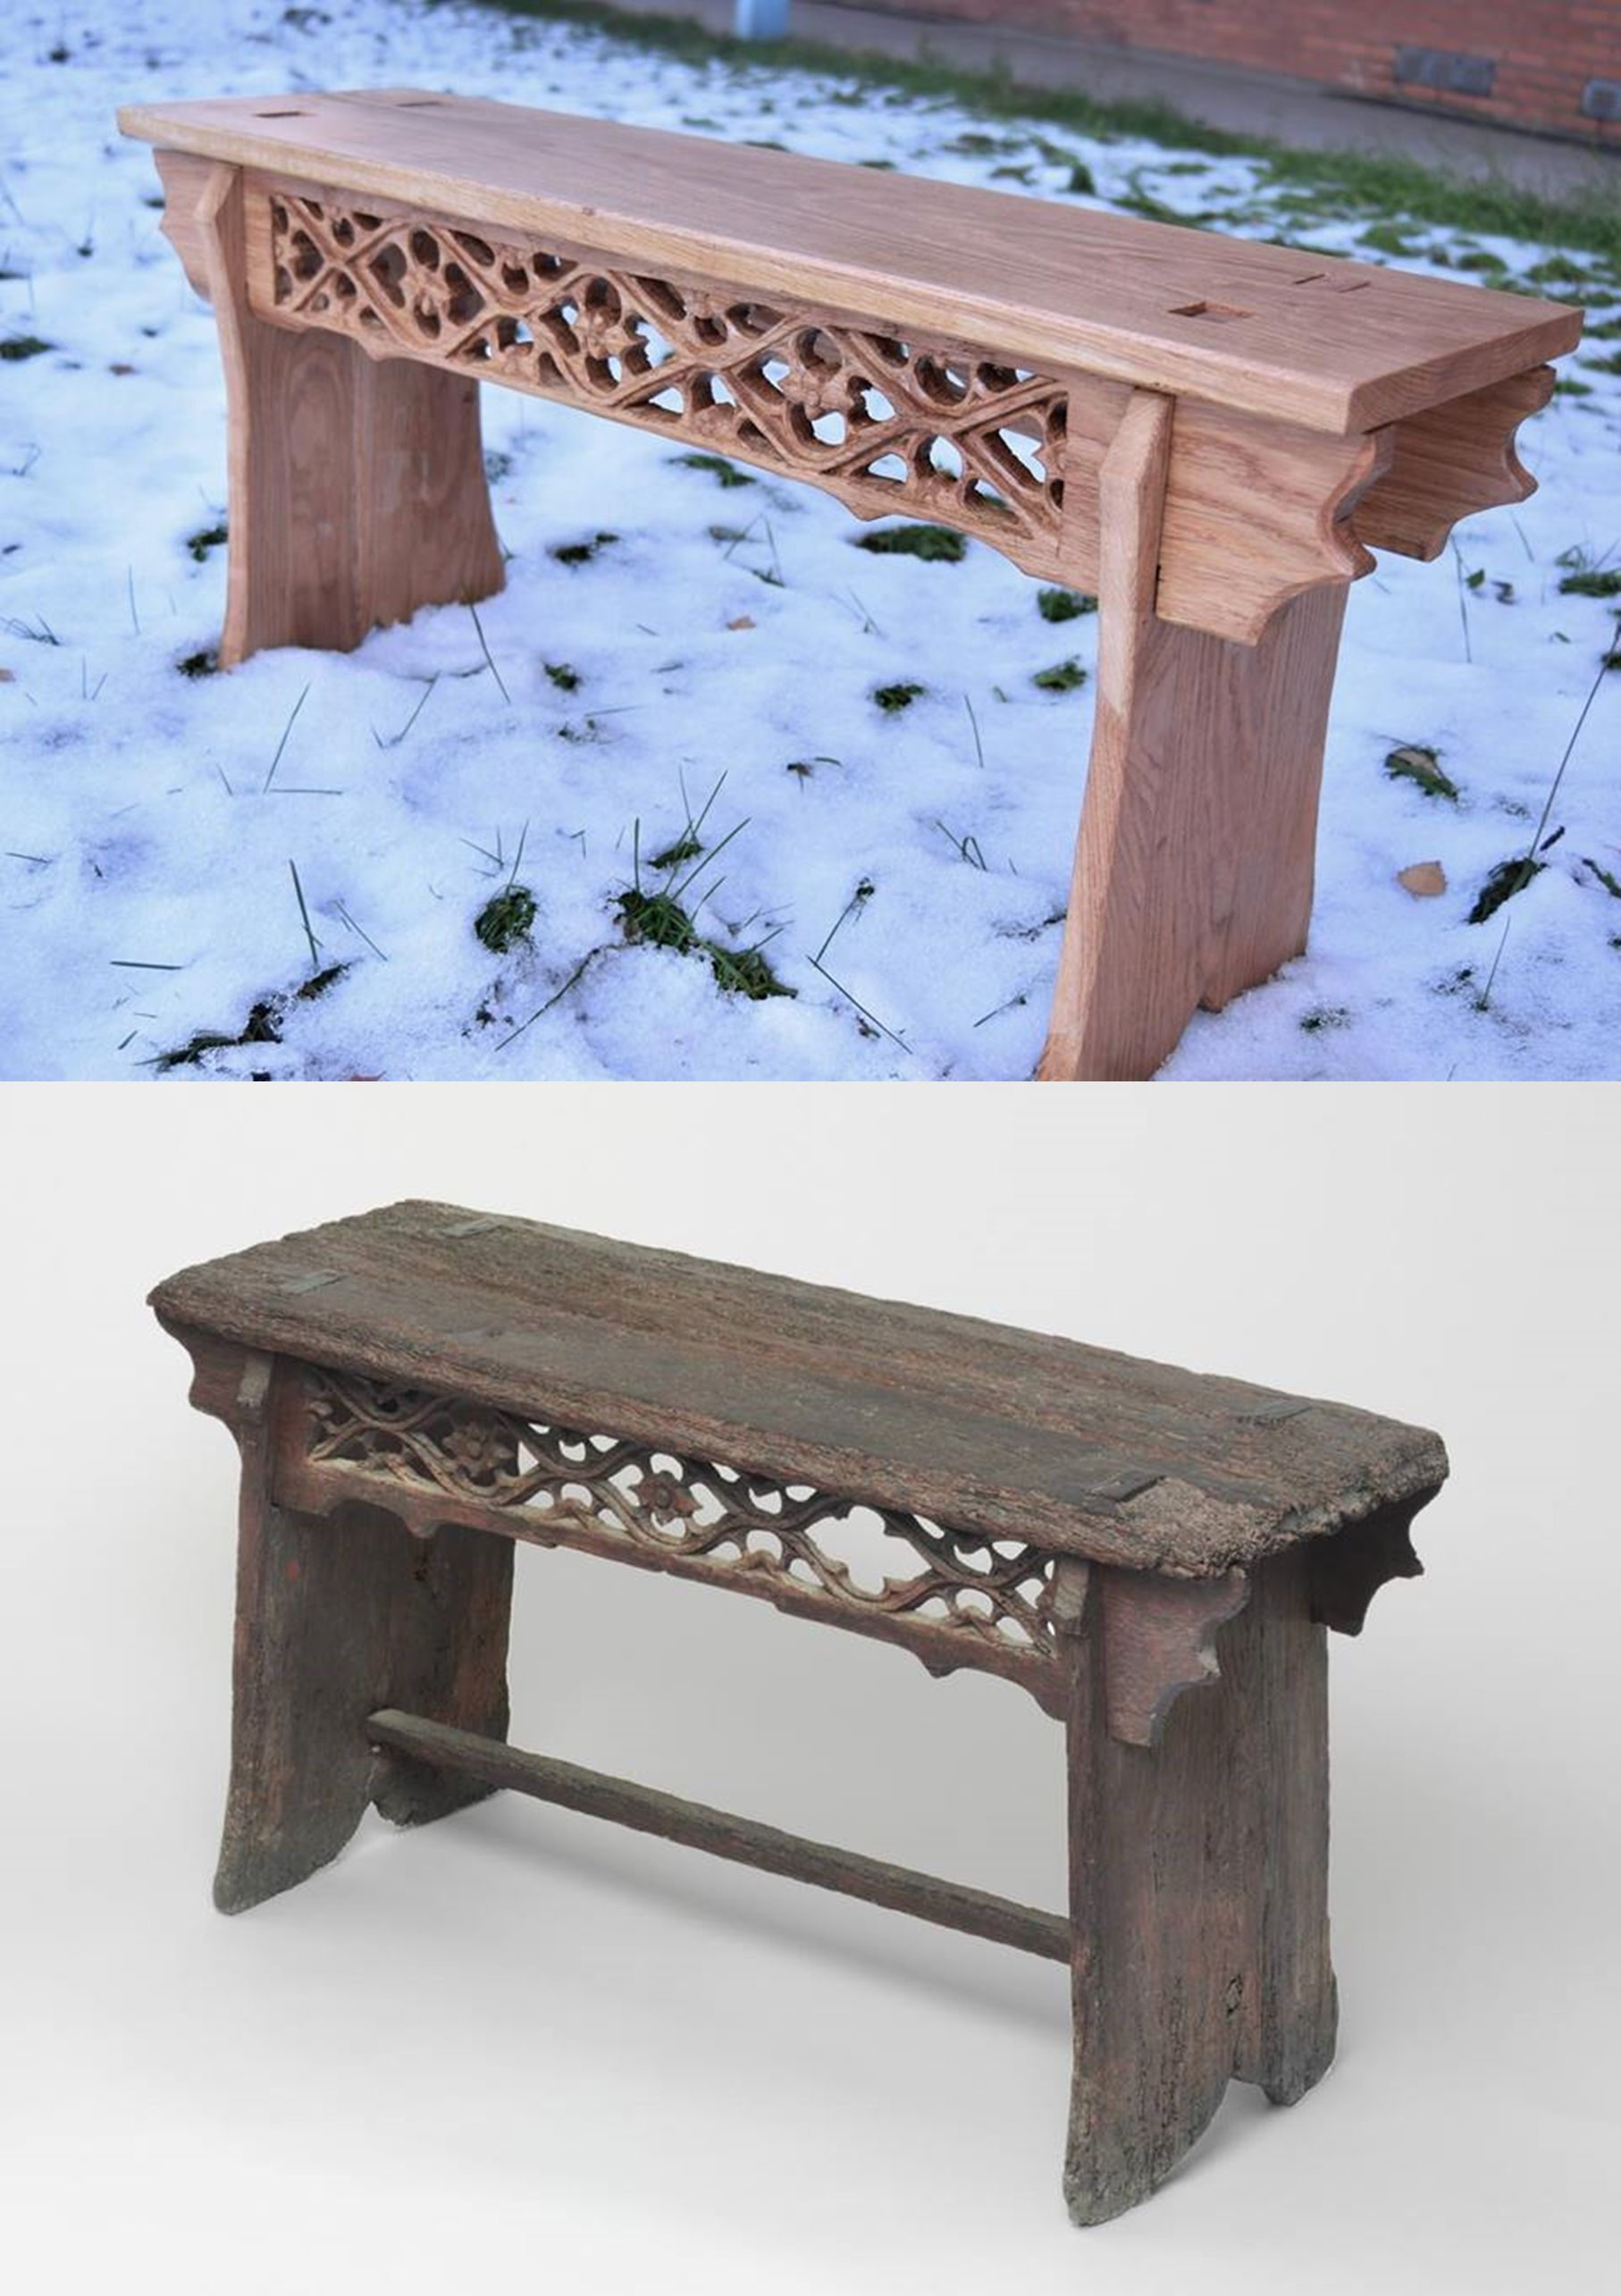 Pleasing Medieval Bench 15Th Century Netherlands Oak In 2019 Machost Co Dining Chair Design Ideas Machostcouk